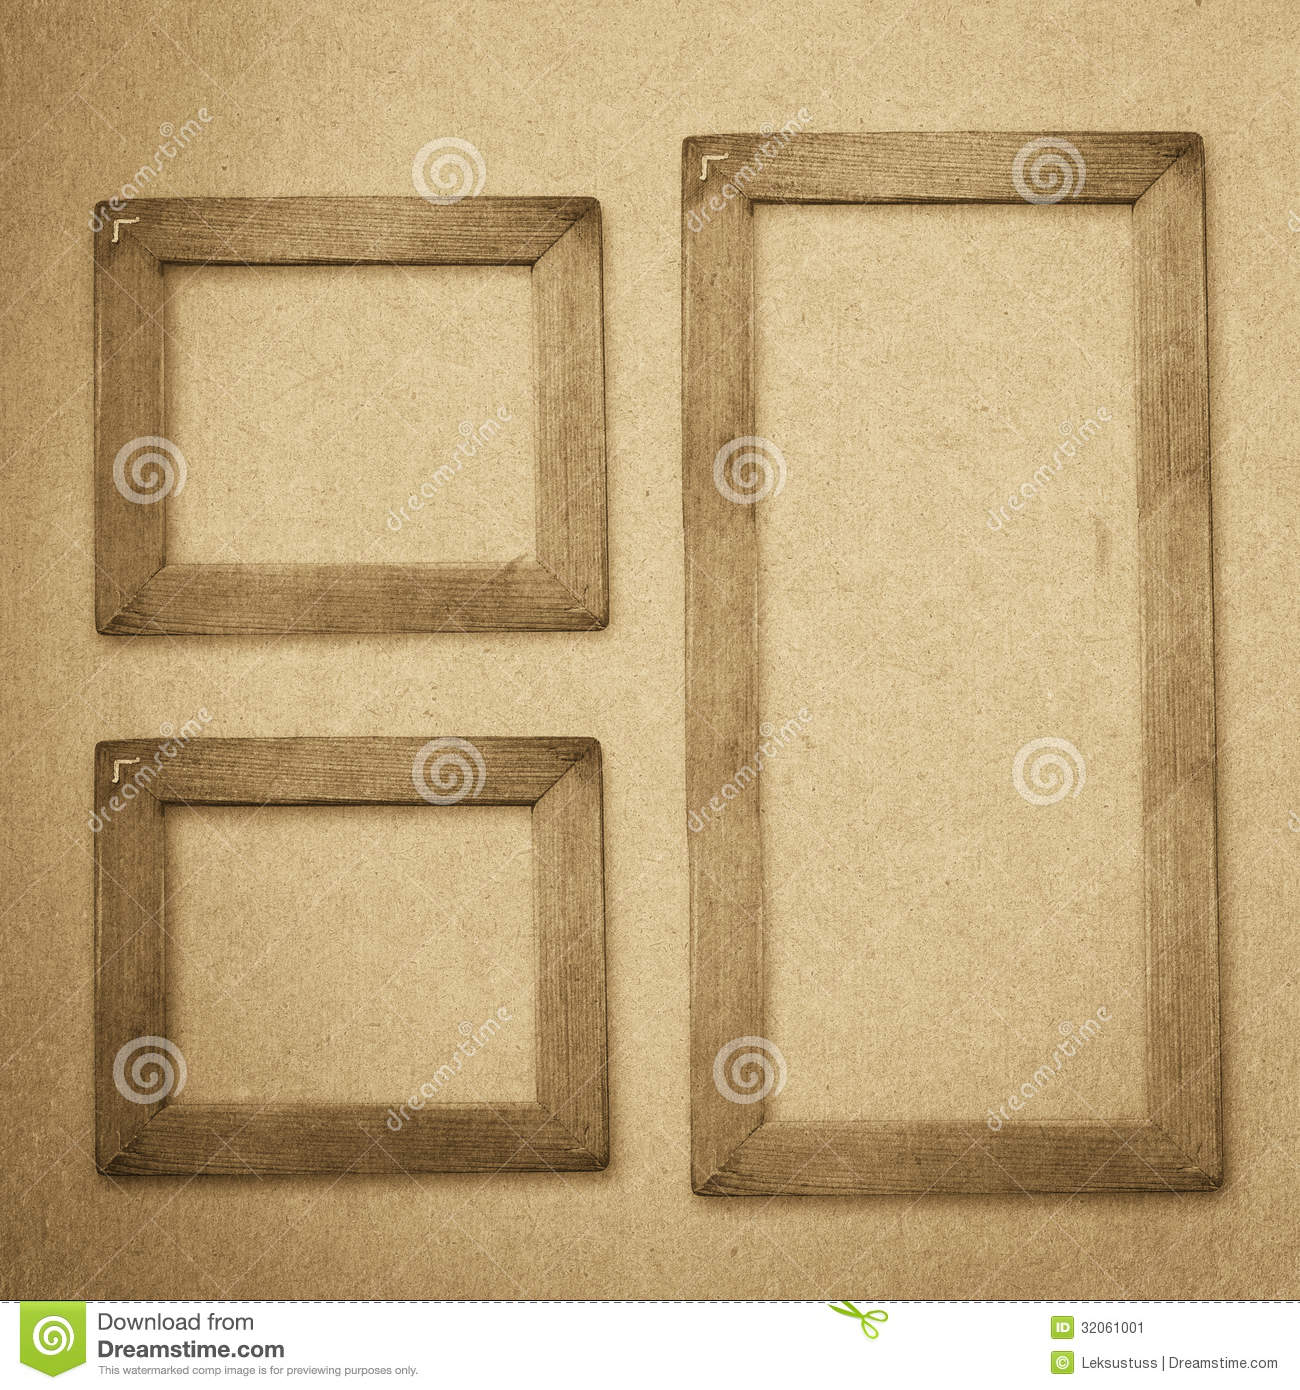 Grunge Wood Frame Background, Vintage Paper Texture Stock Image ...